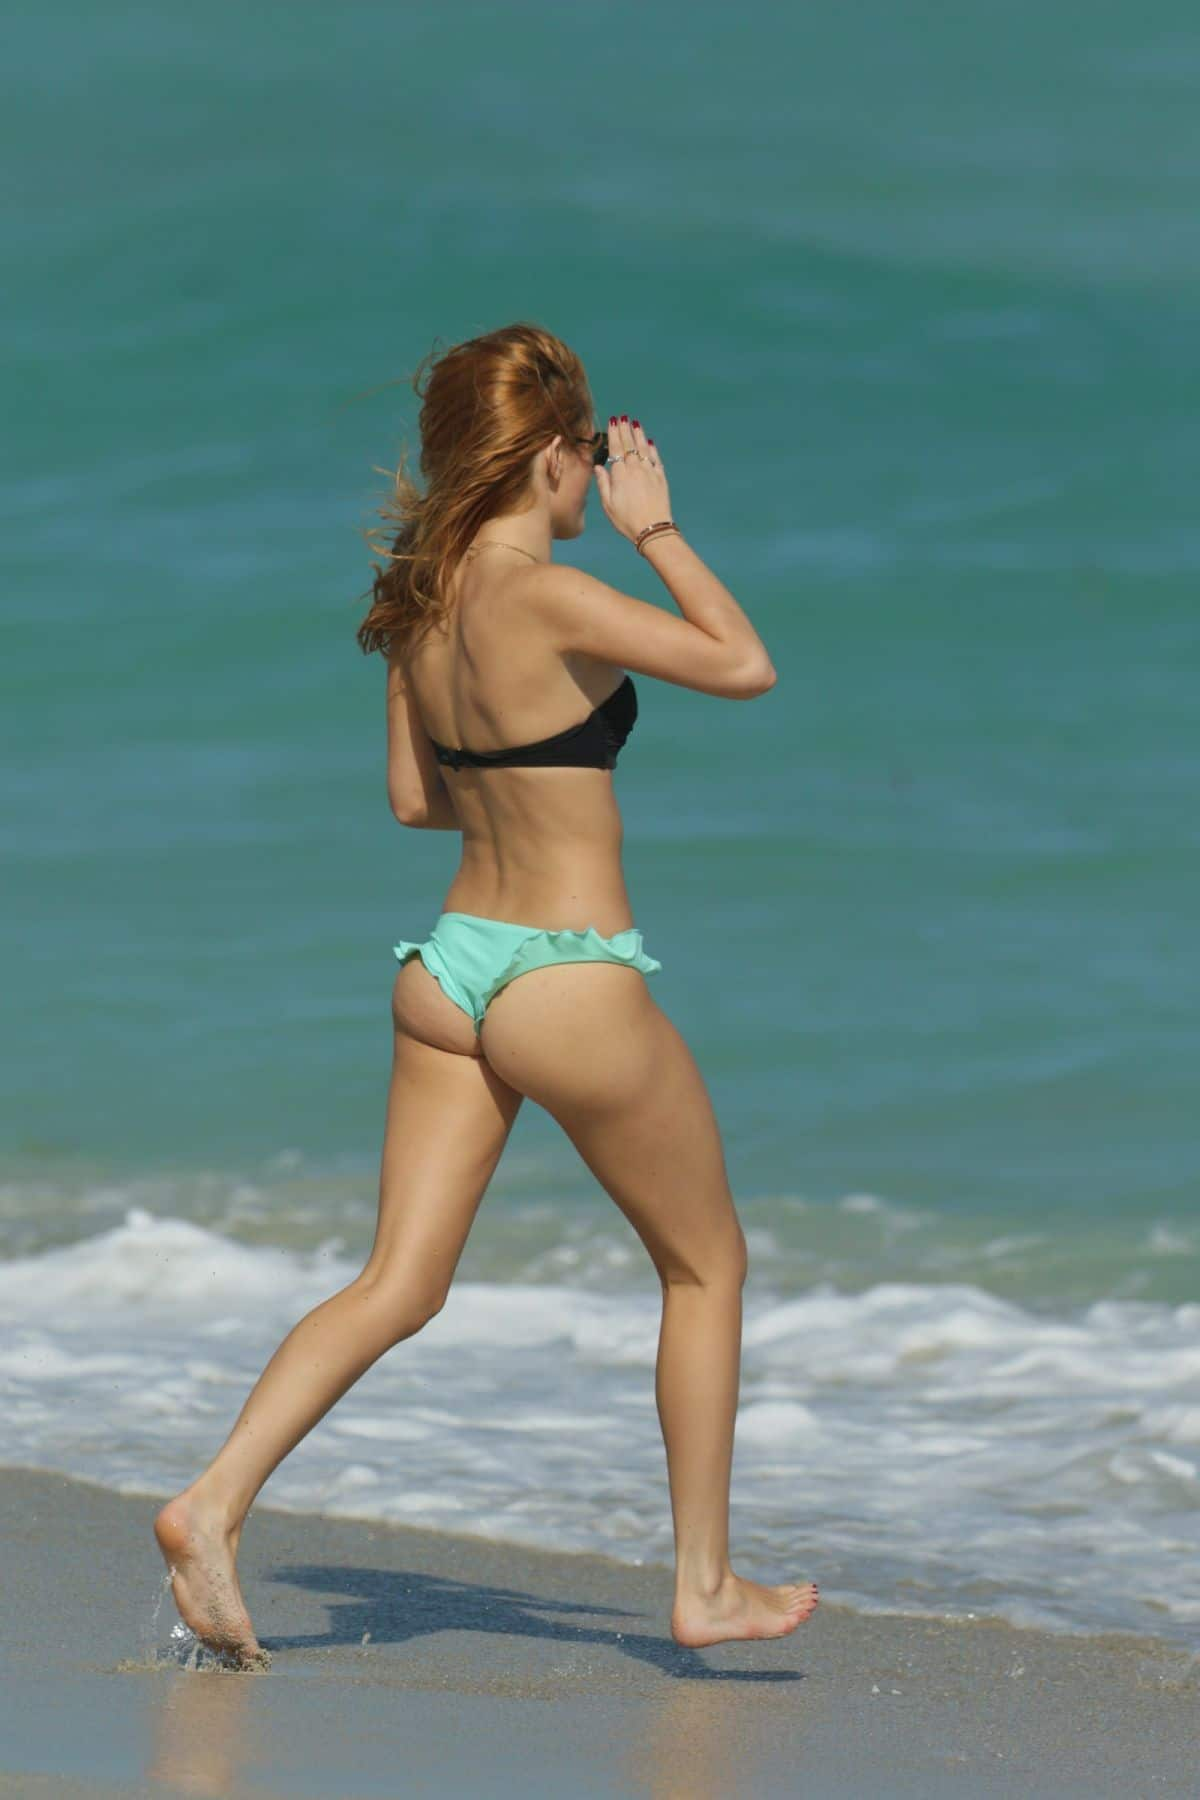 Bella Thorne hot image